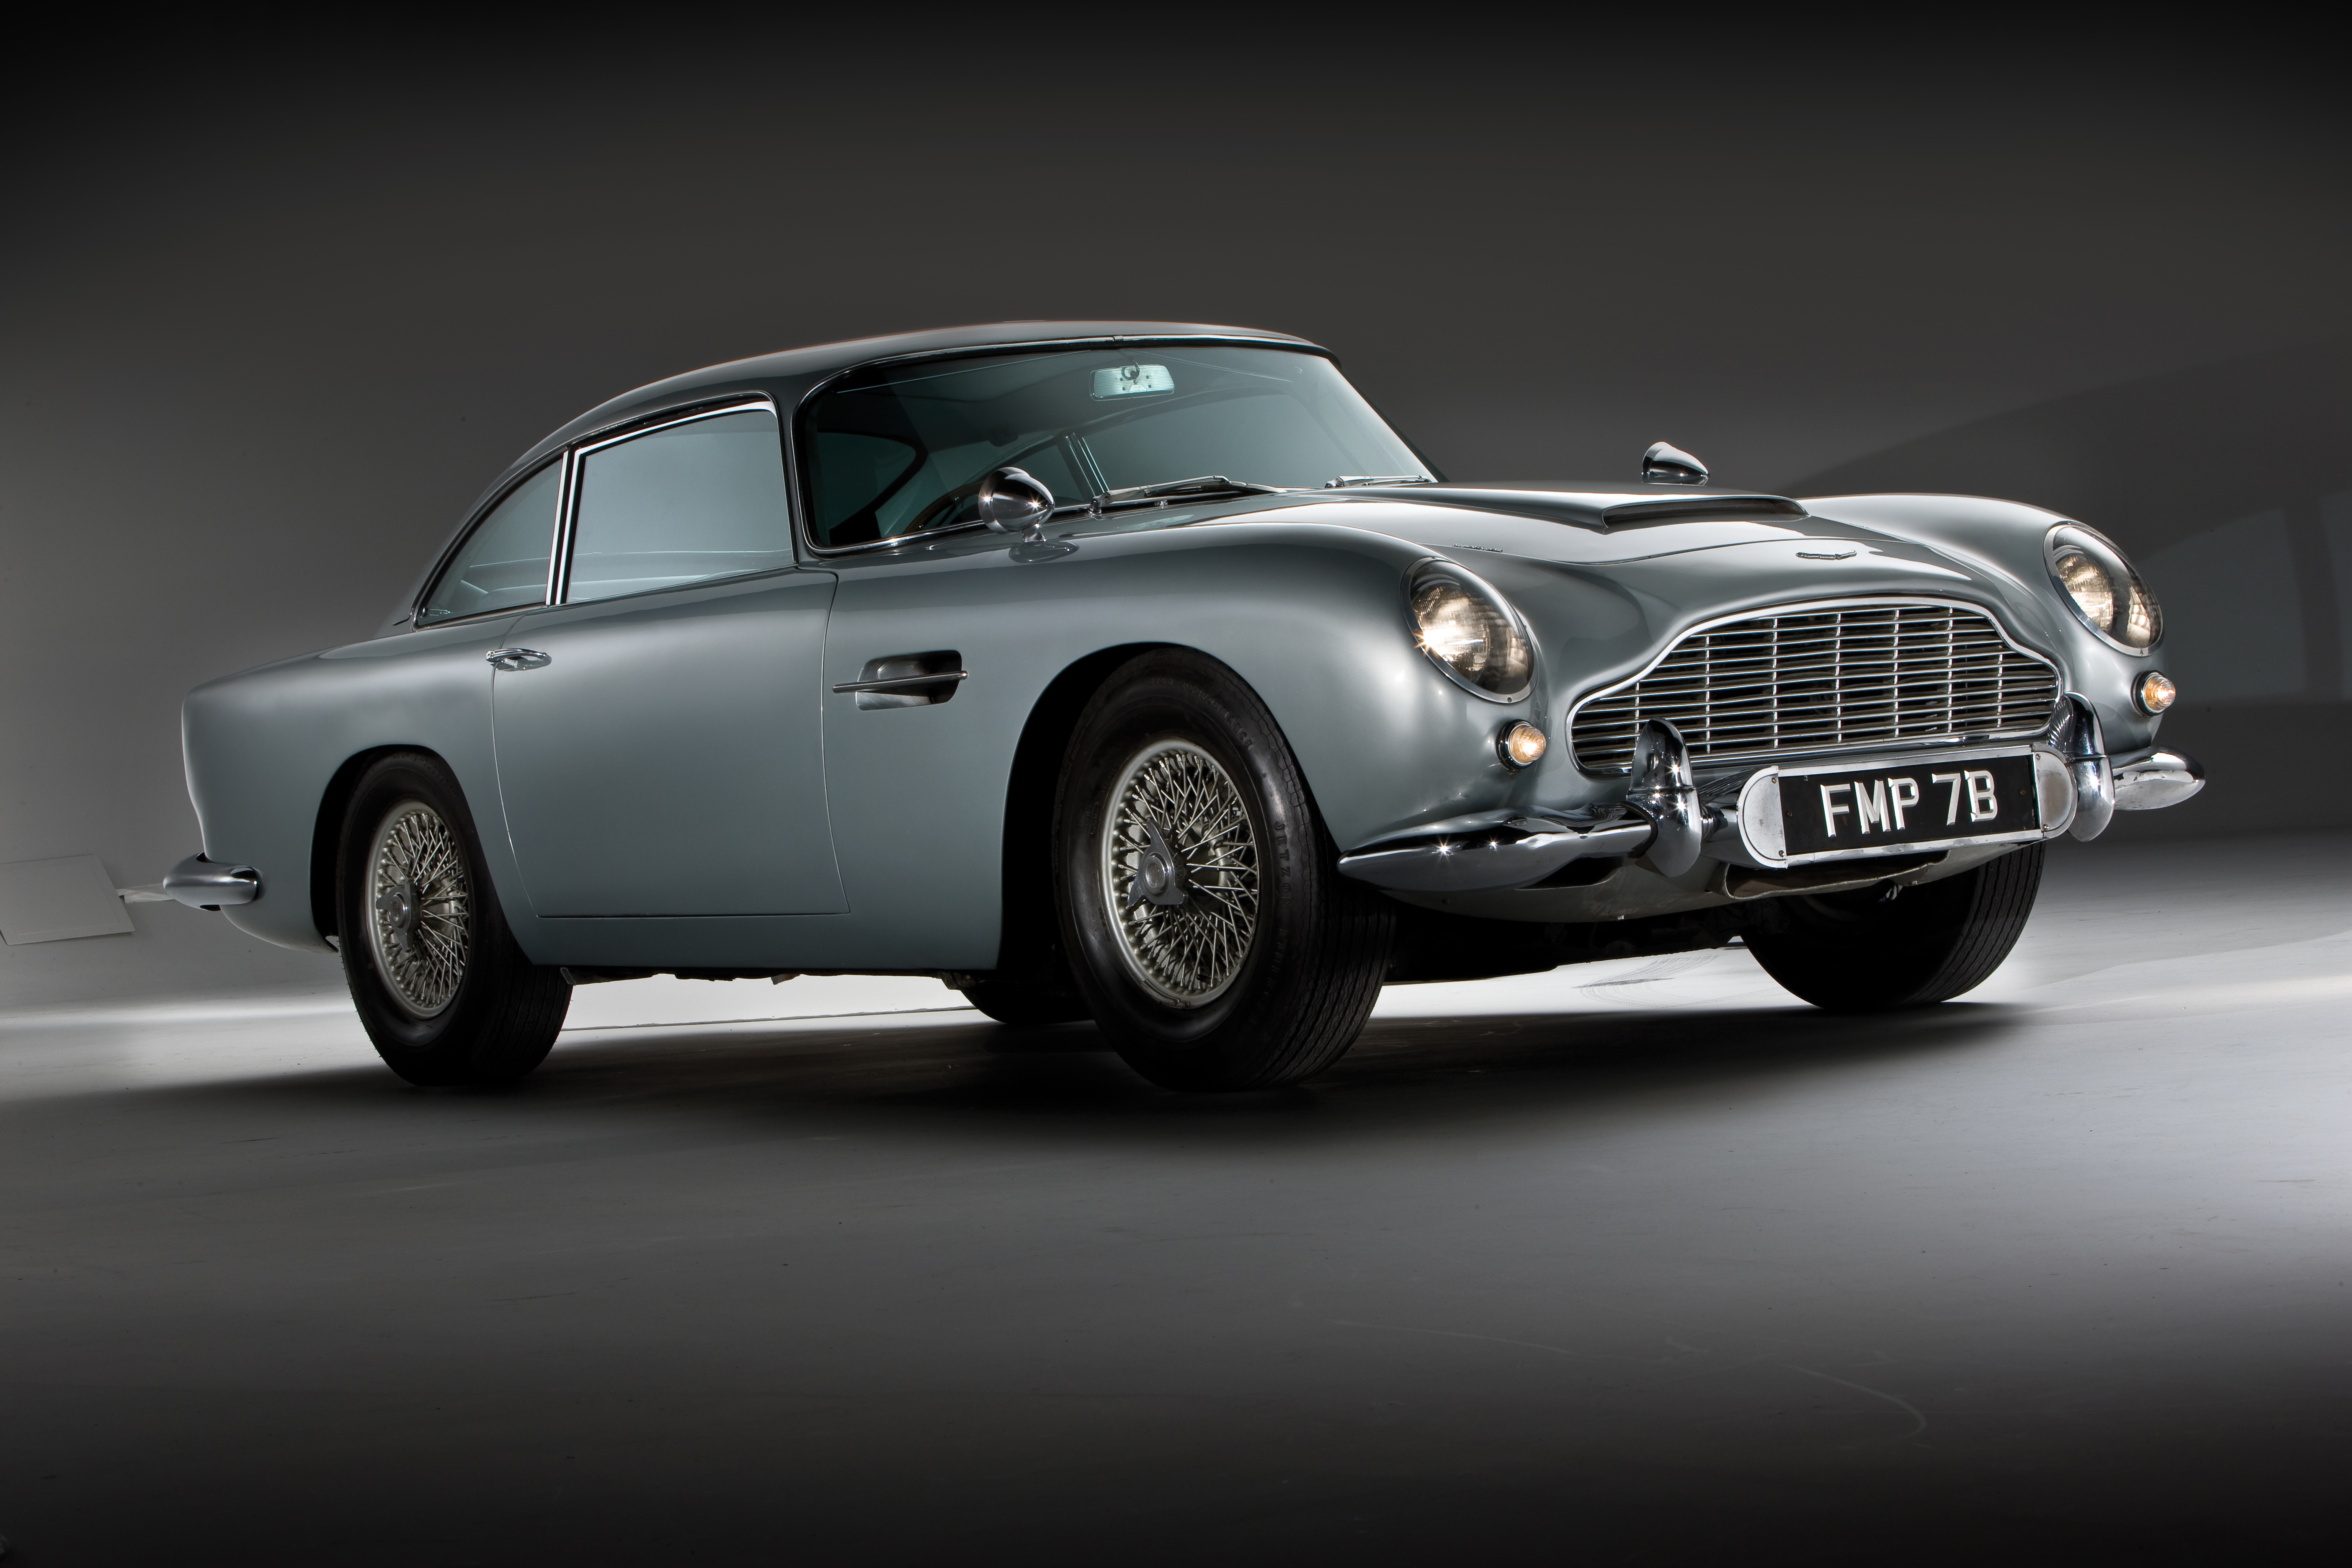 Best Aston Martin wallpapers for phone screen